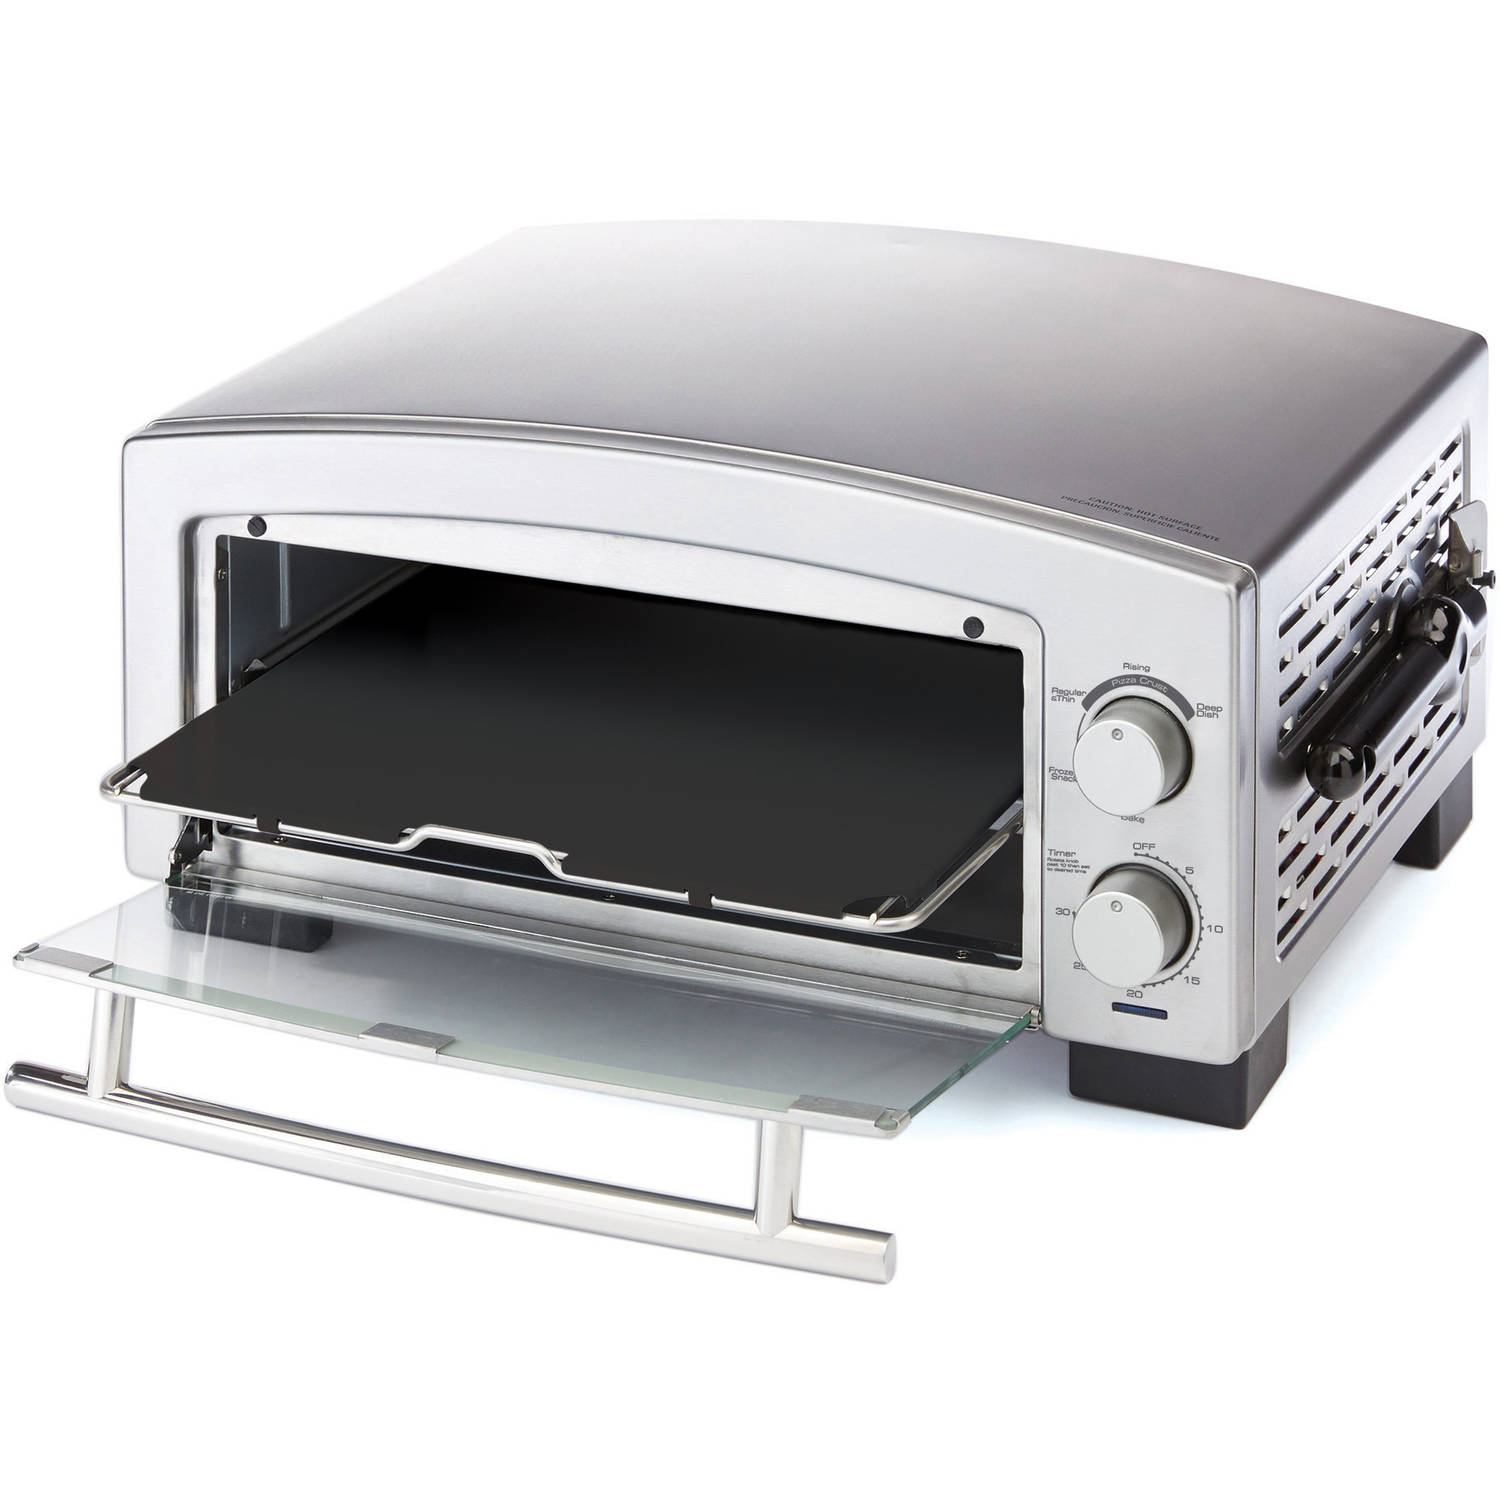 Black & Decker 5-Minute Pizza Oven, Snack Maker, P300S by Spectrum Brands